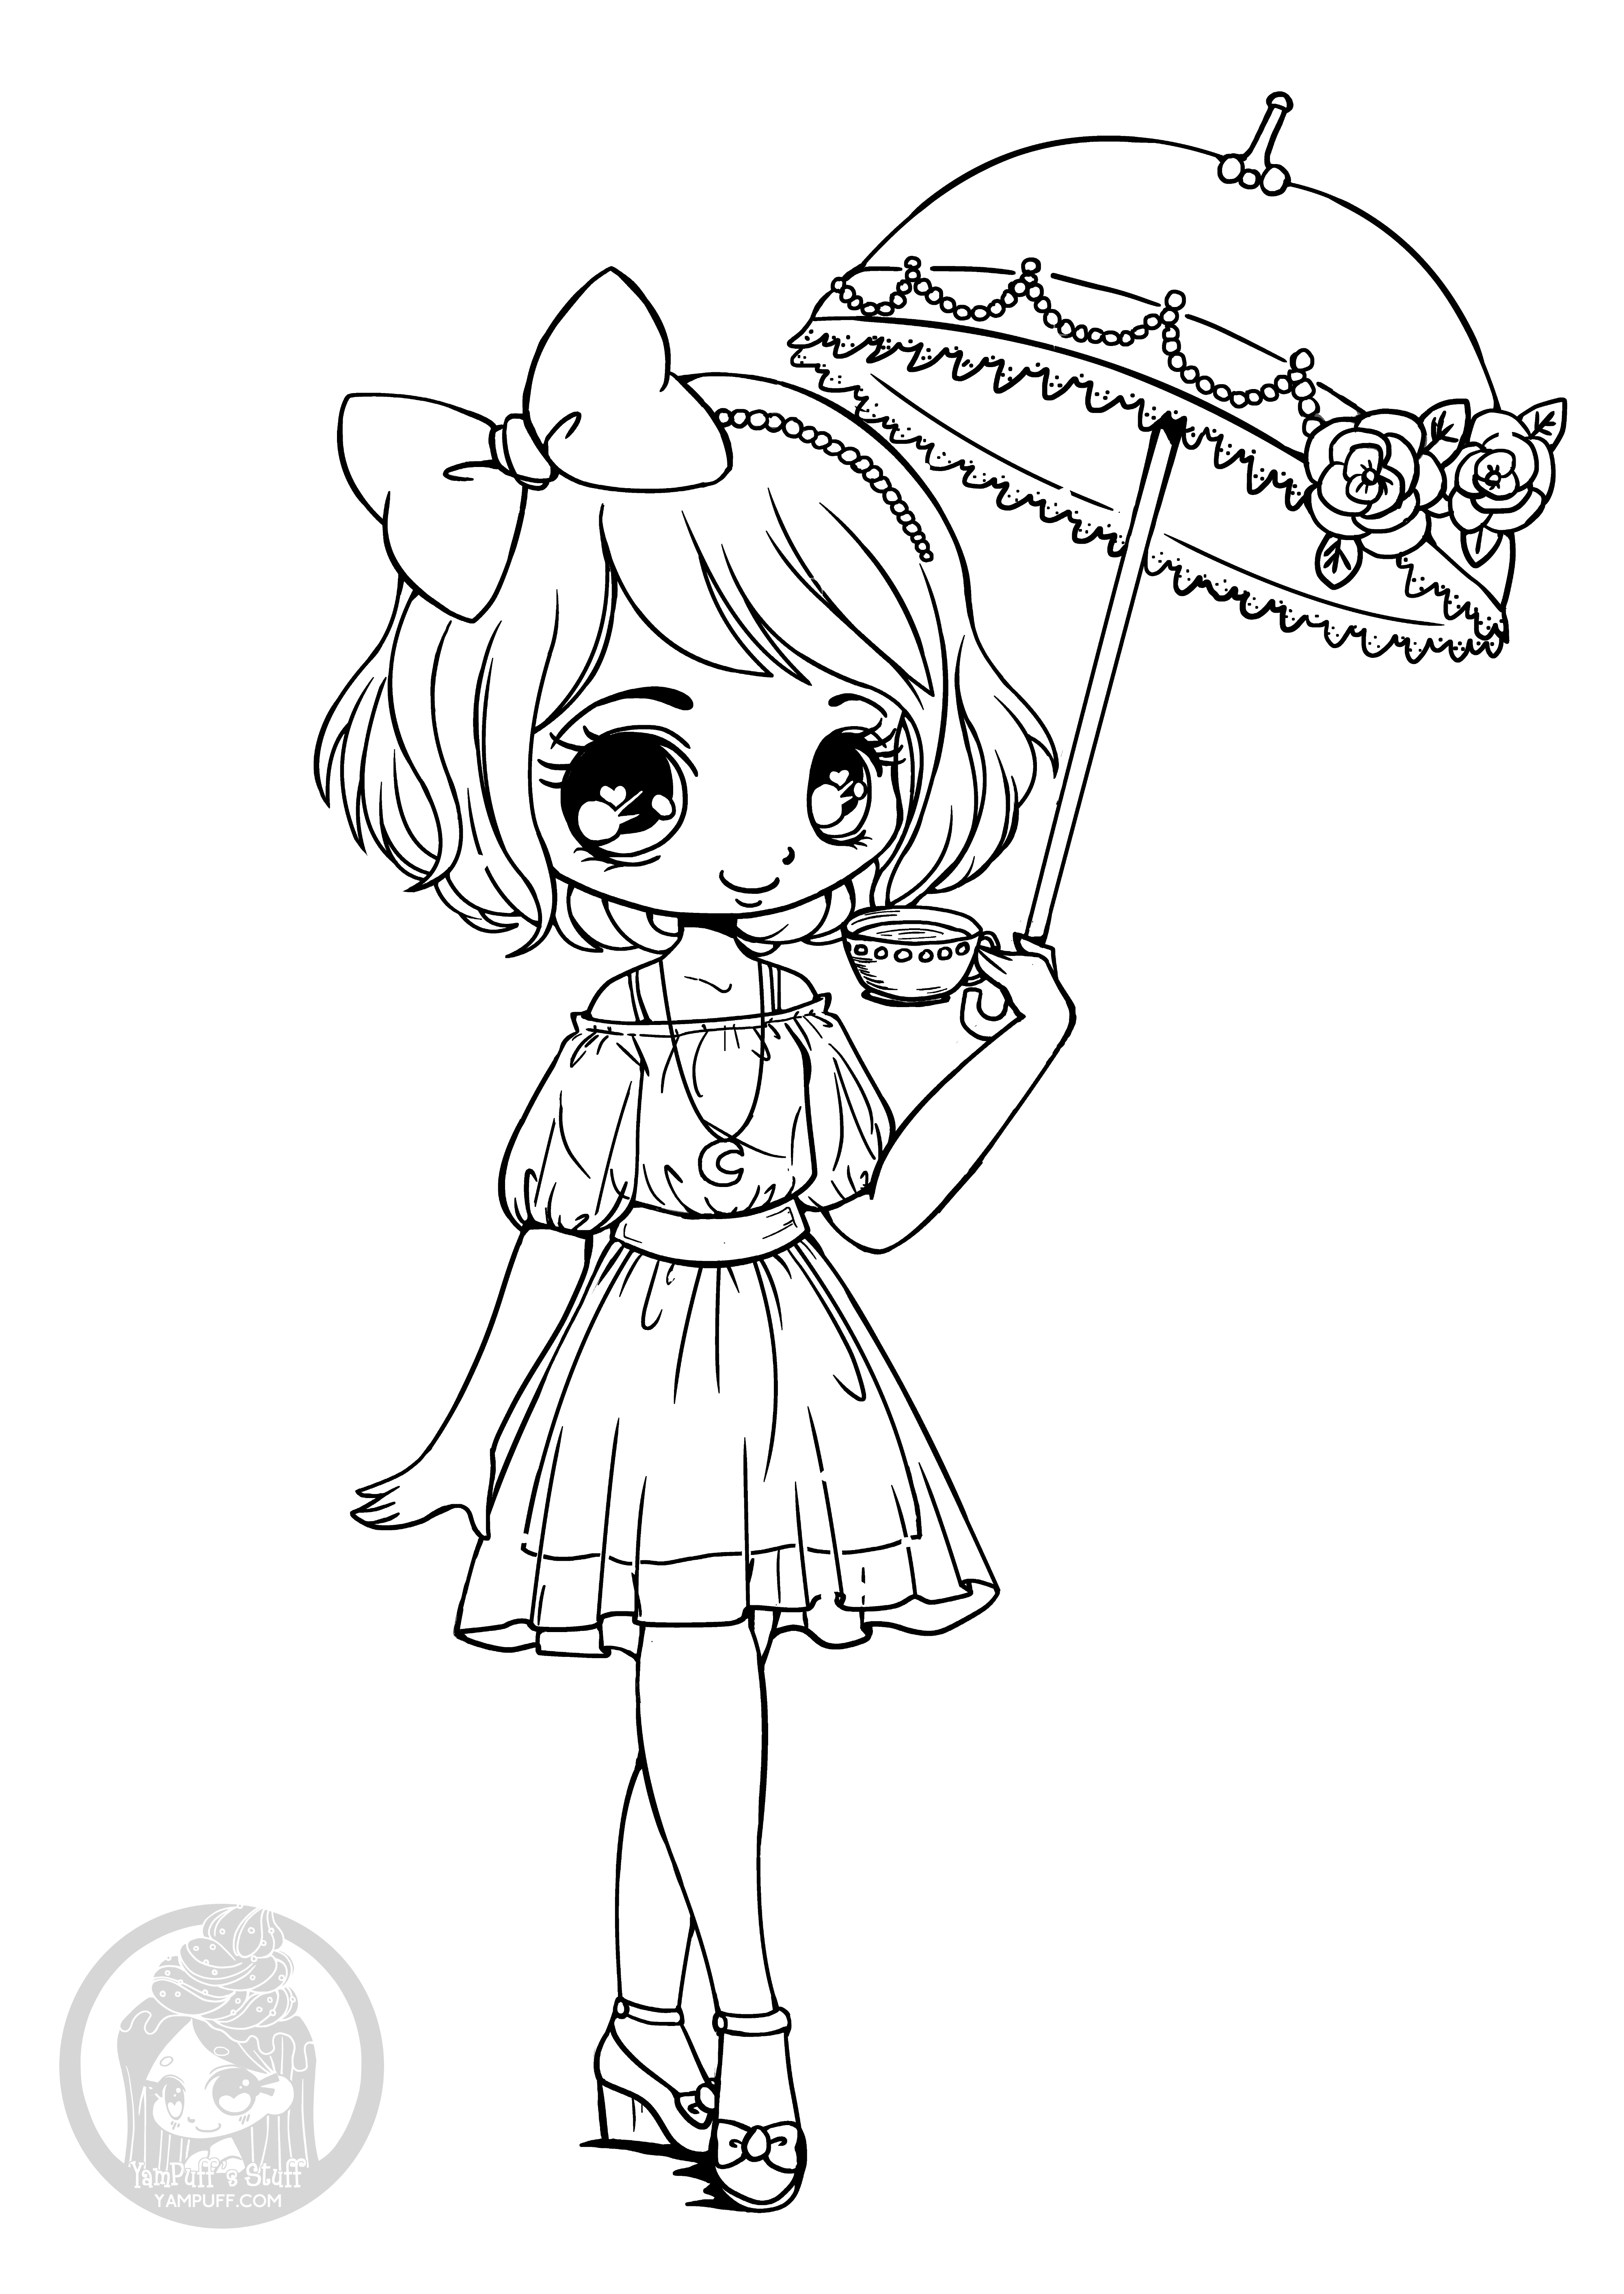 chibi girls coloring pages click on a picture to make it larger then print it out girls coloring chibi pages